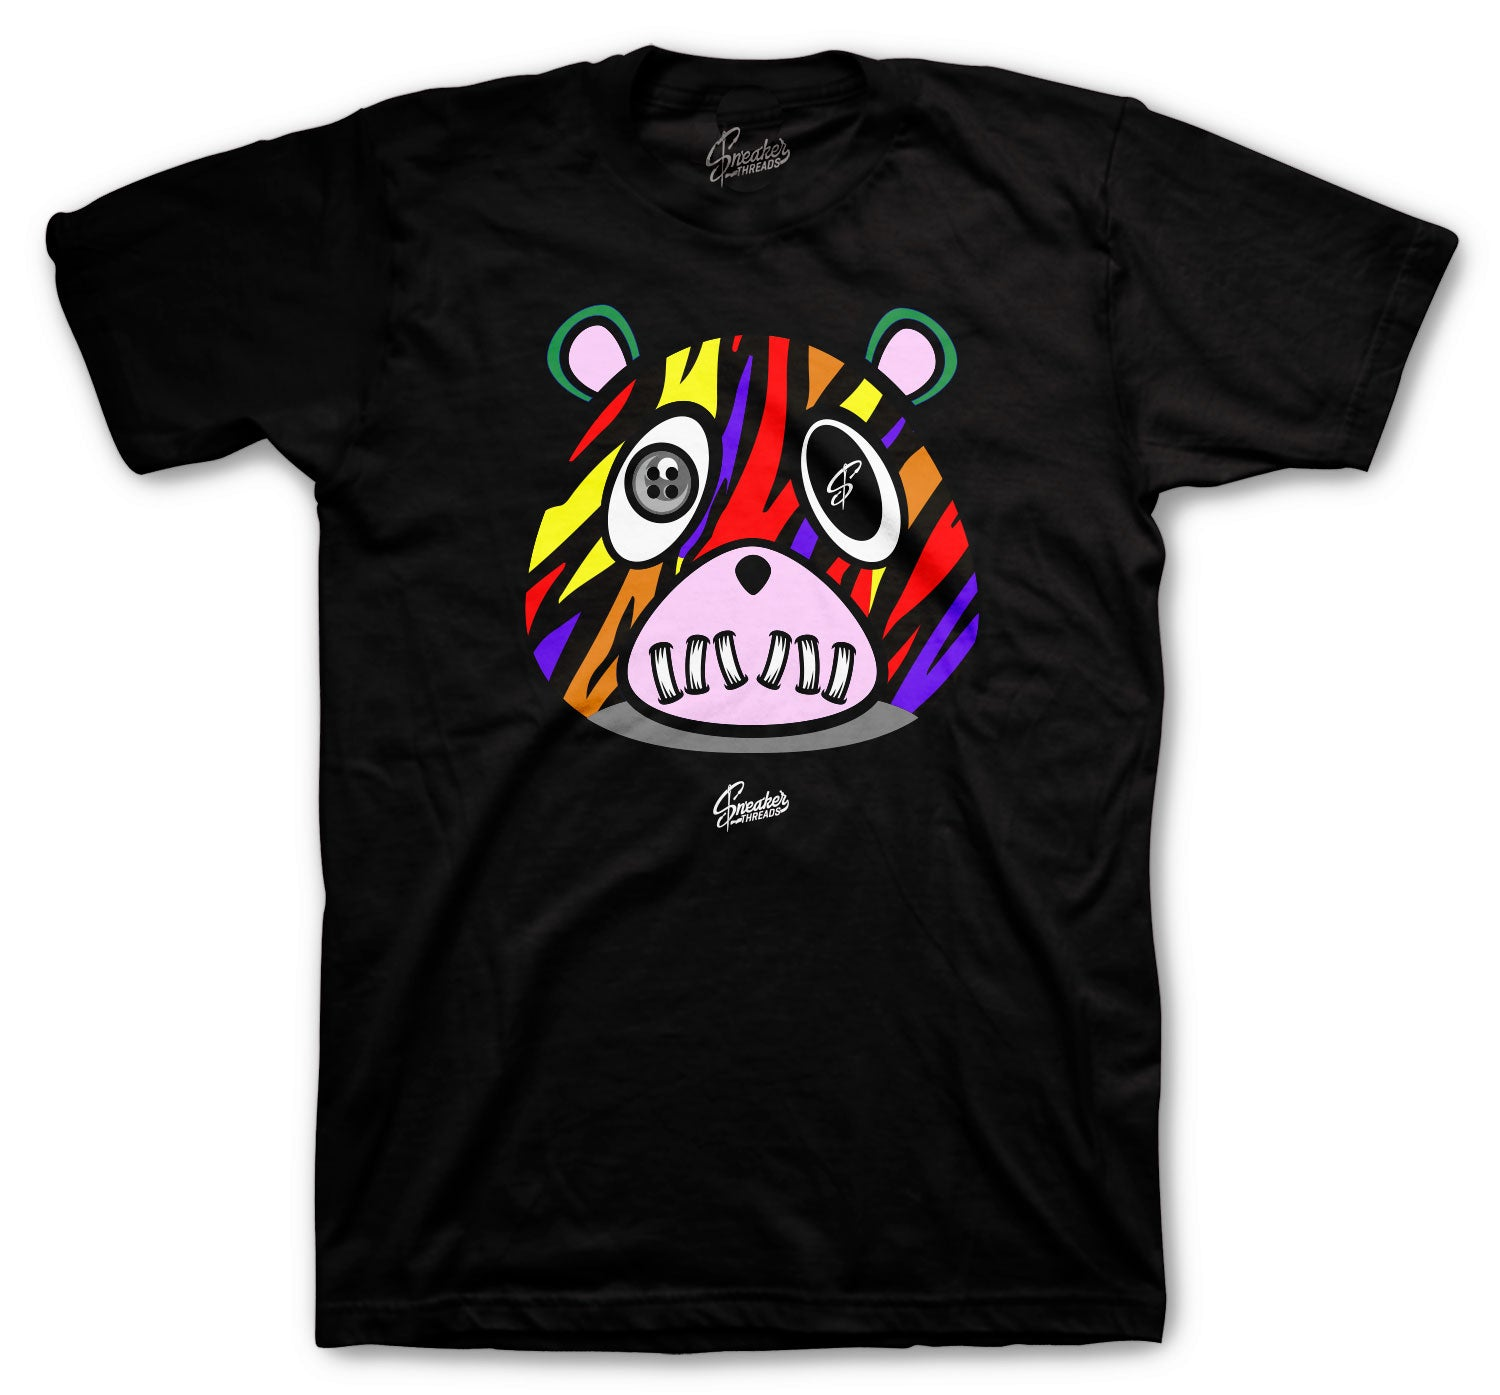 Jordan 1 Balvin Shirt -  ST Bear - Black